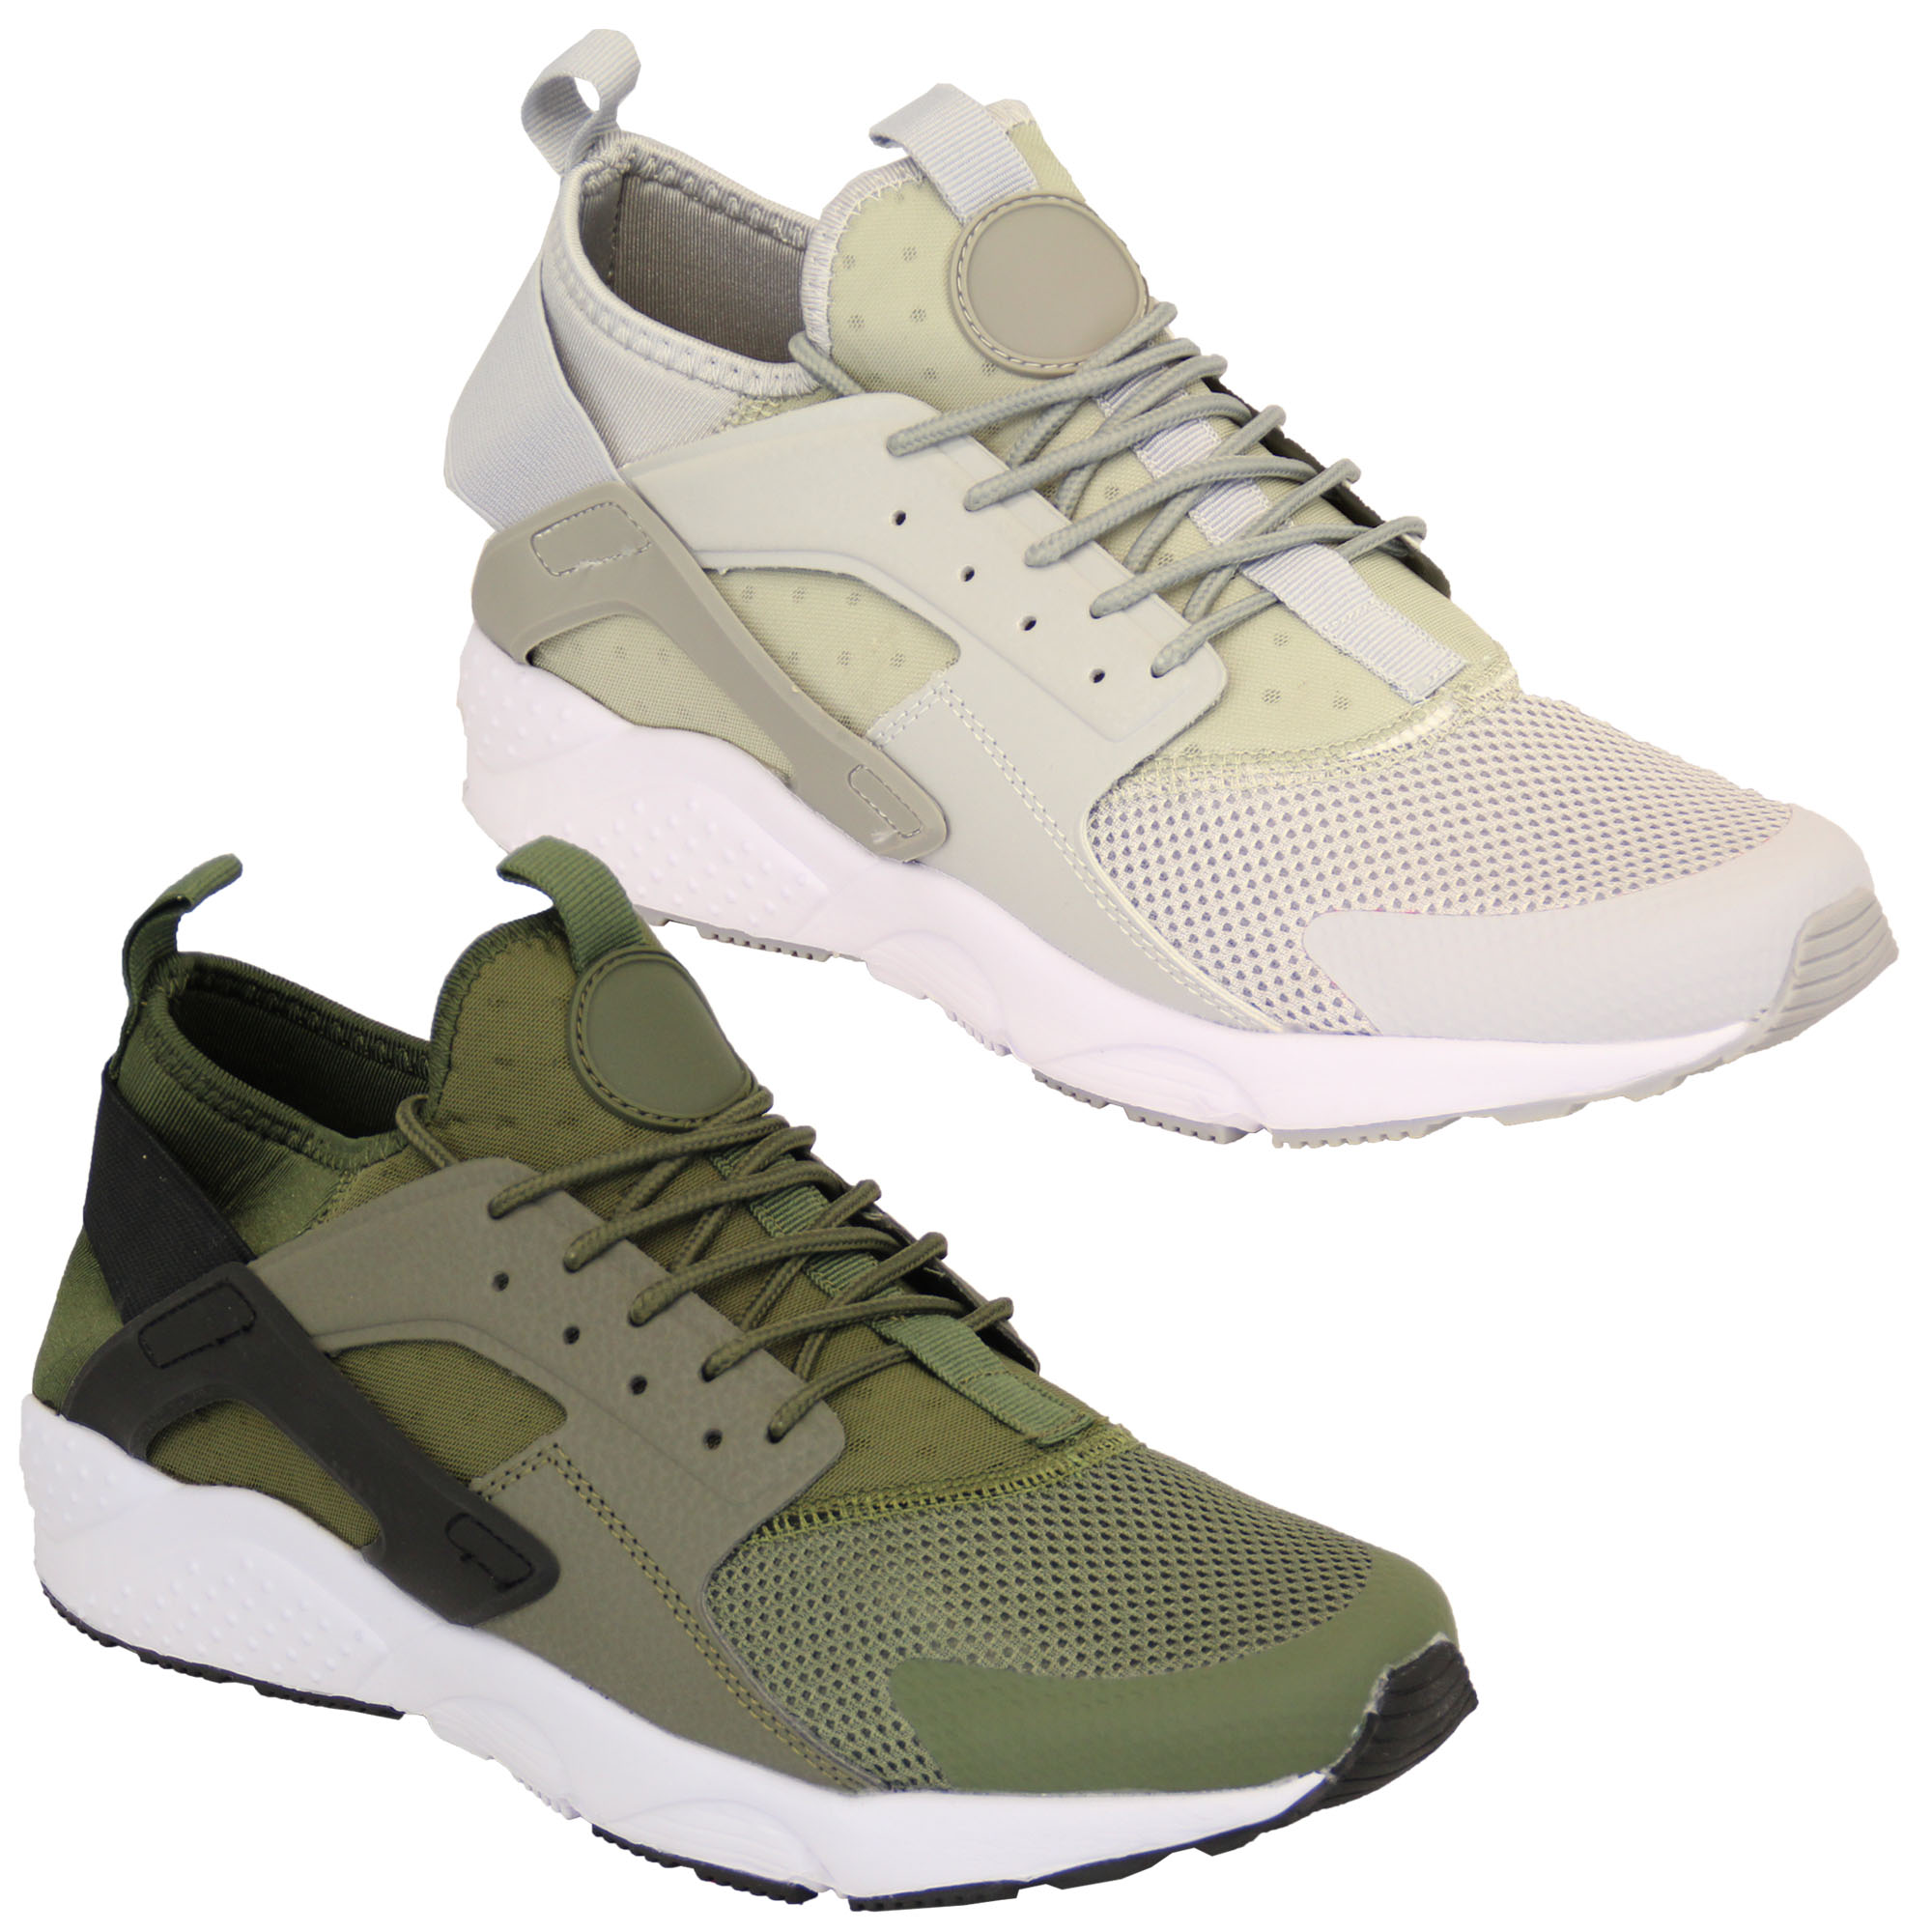 Mens-Trainers-Shoes-Lace-Up-Sneakers-Running-Gym-Sports-Mesh-Casual-Fashion-New thumbnail 5